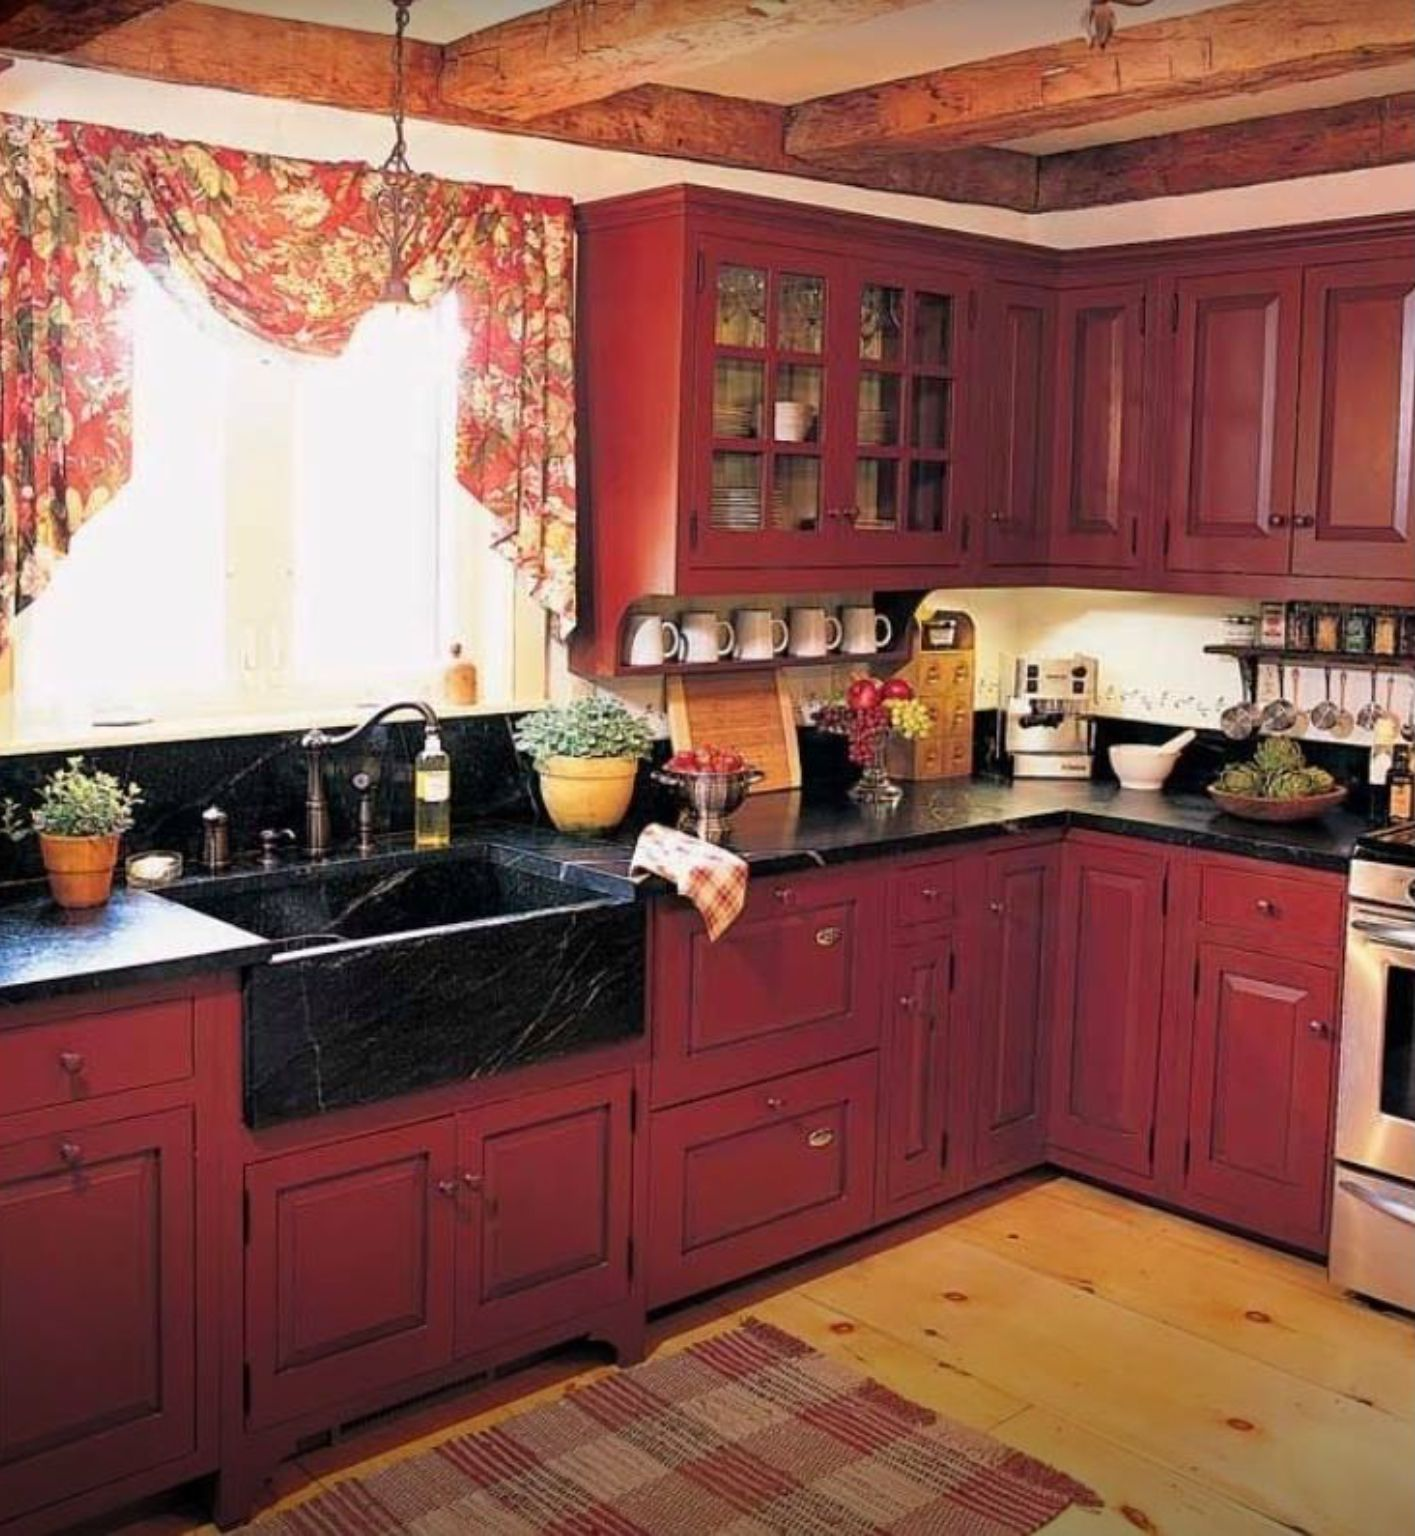 Pin By A R On Kitchen Red Kitchen Cabinets Rustic Kitchen Rustic Country Kitchen Decor